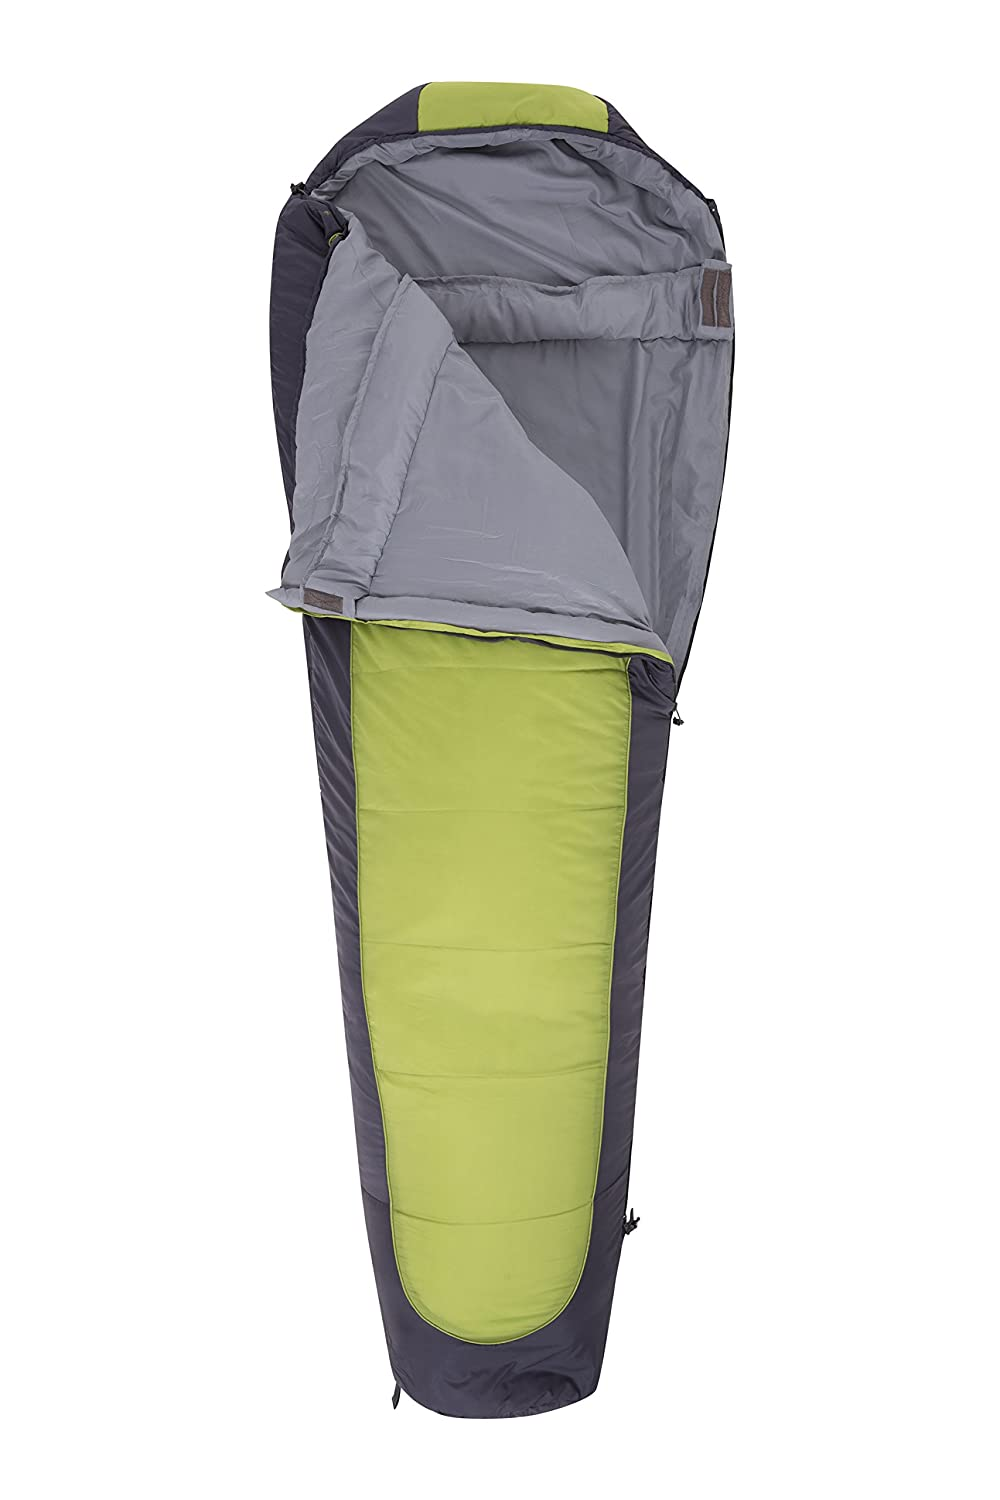 Mountain Warehouse Saco de dormir Microlite 950: Amazon.es: Deportes y aire libre